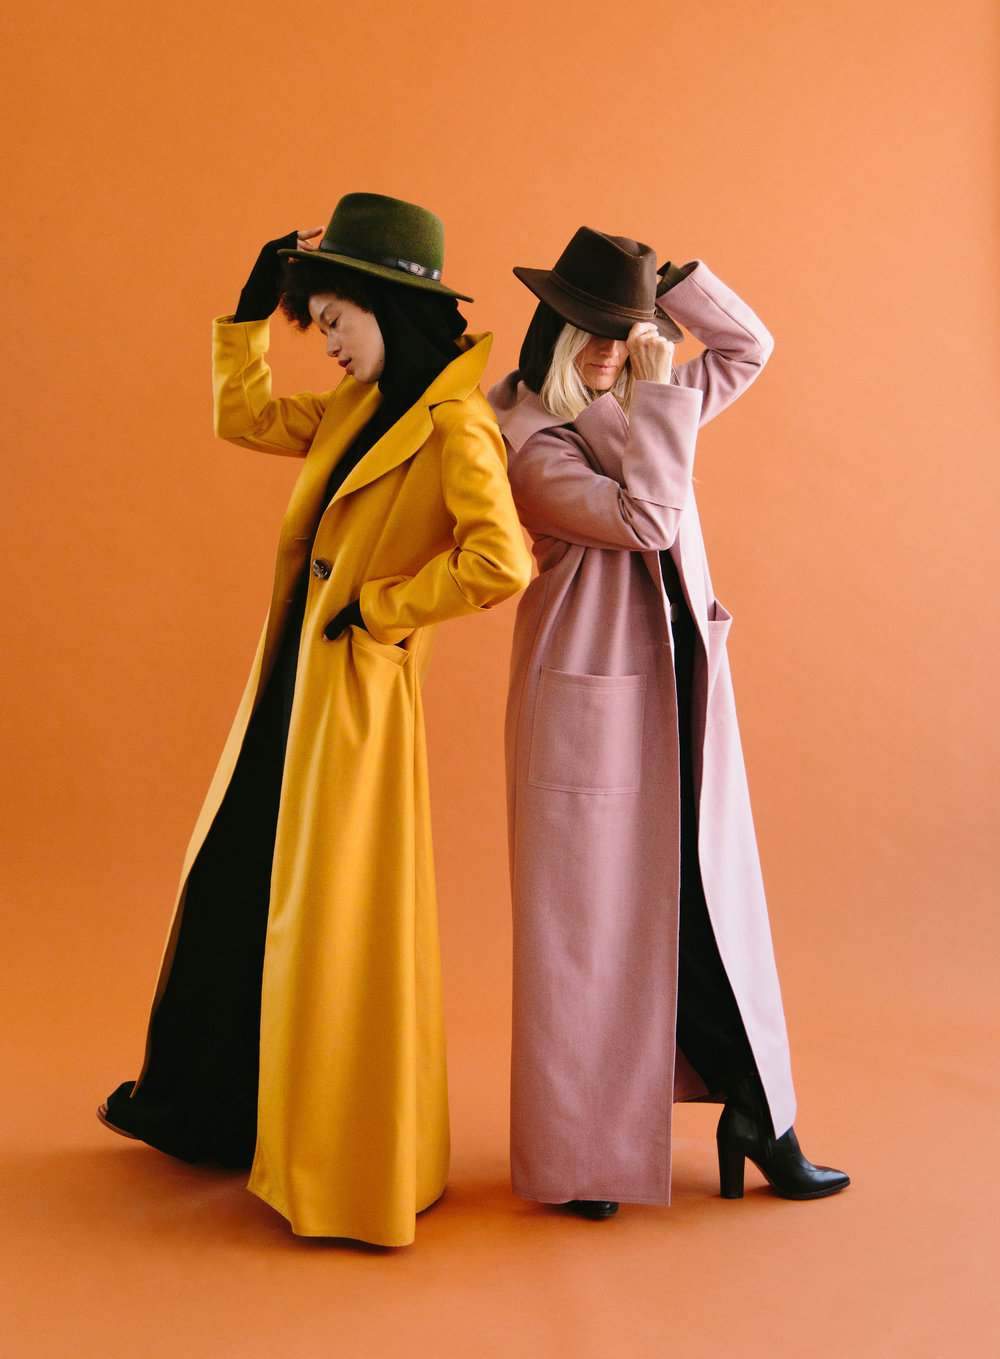 Dancing In Mustard+ Sleek In Lilac